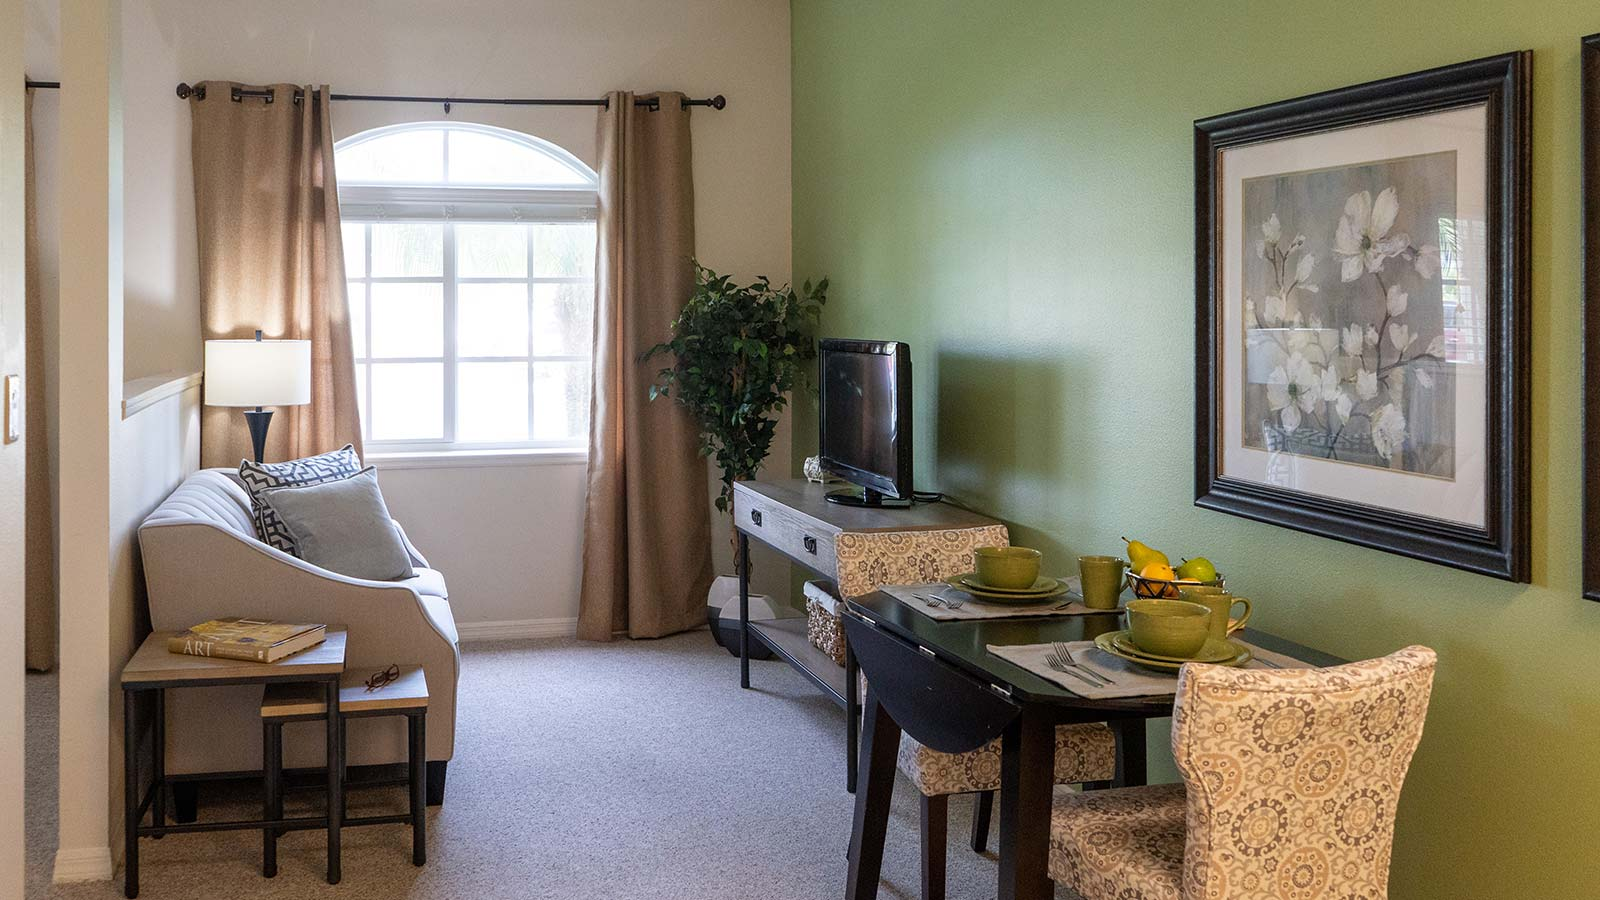 Model apartment living room at Heron Club assisted living and memory care in Sarasota Florida